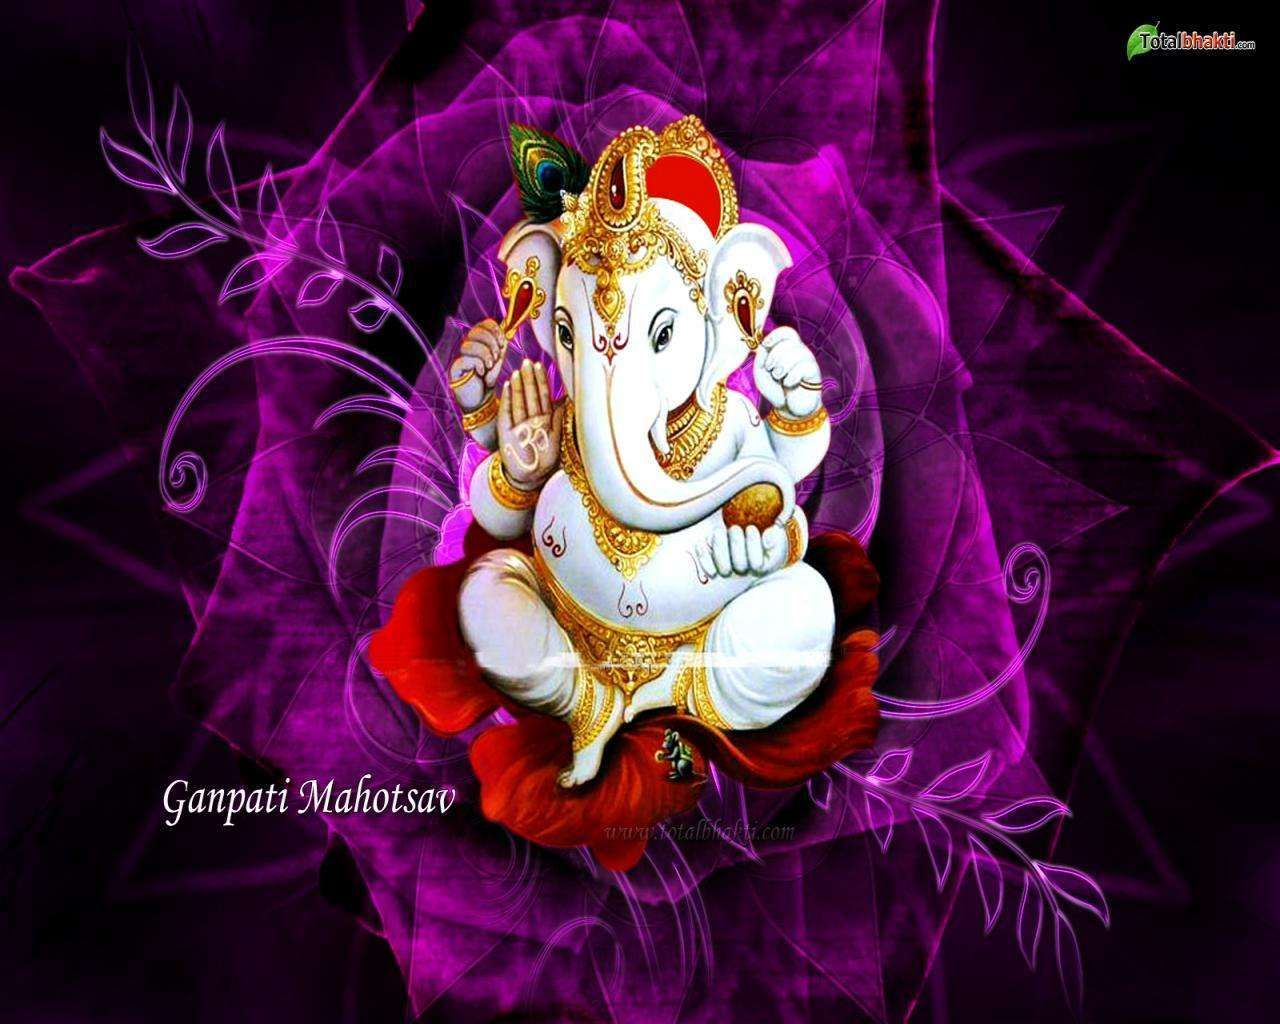 Collection Of G O D Pictures On Spyder Wallpapers Hd Wallpaper Ganesh Wallpaper Photo Hd